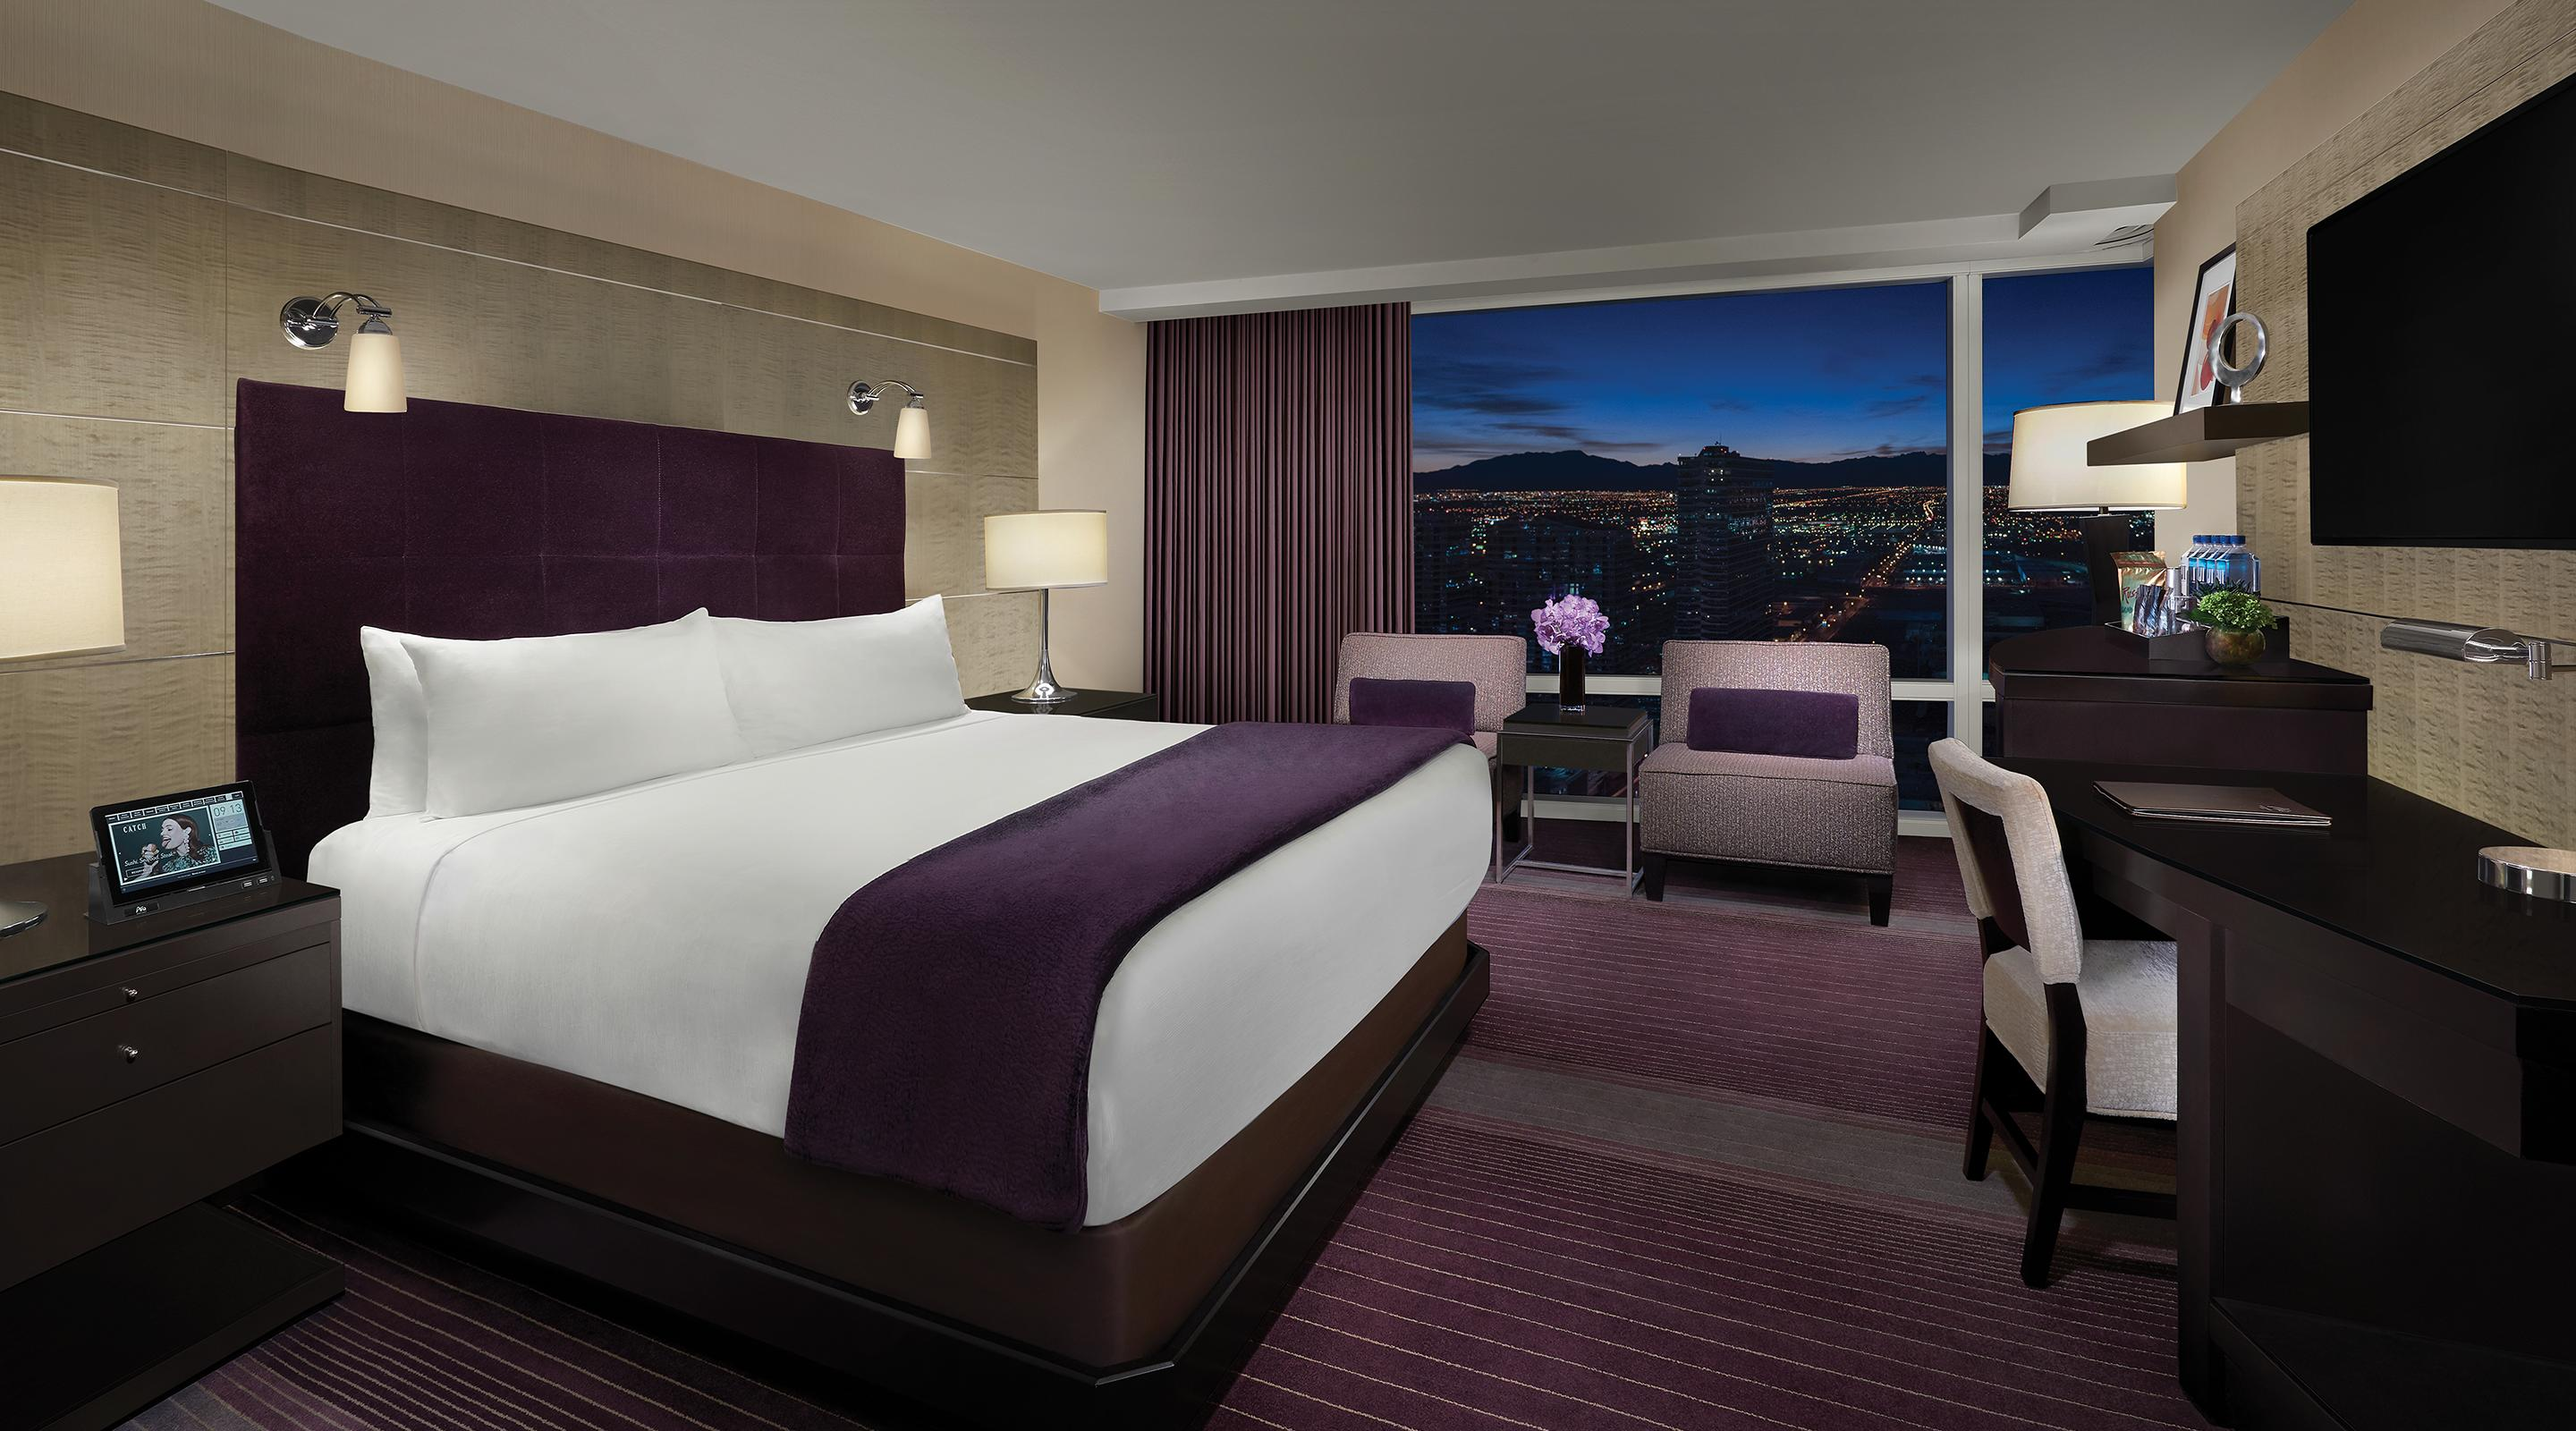 King bed deluxe room mountain view at Aria.